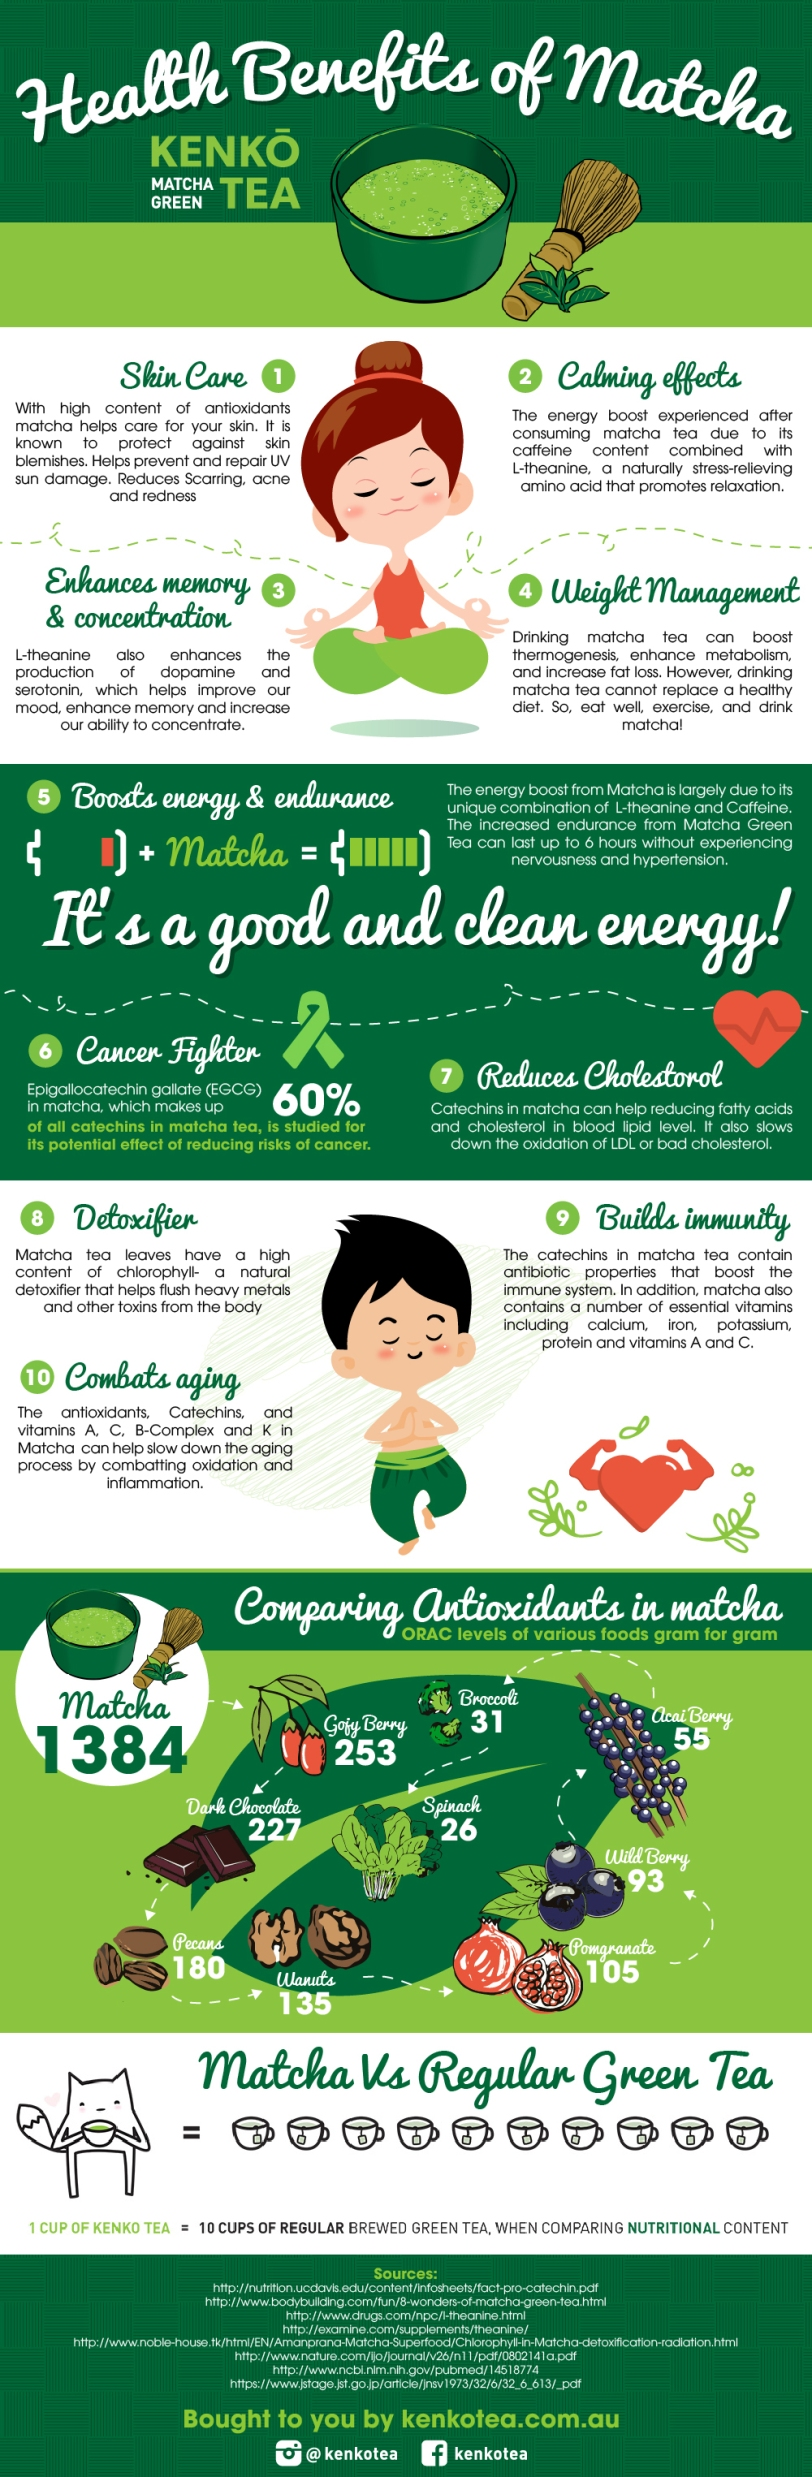 Health Benefits of Matcha Green Tea by Kenko Tea